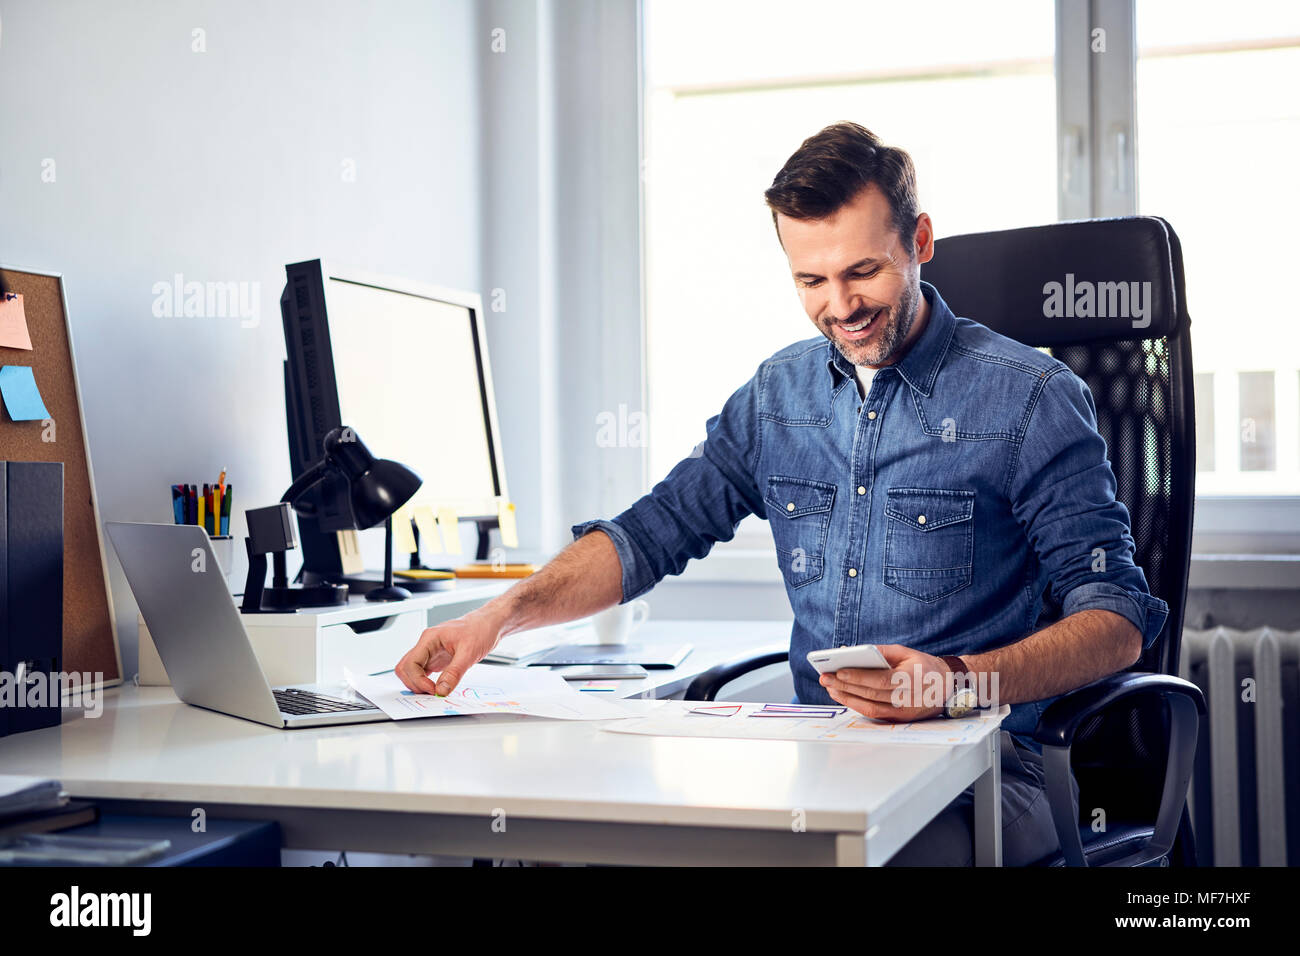 Smiling man with smartphone and draft working at desk in office Stock Photo